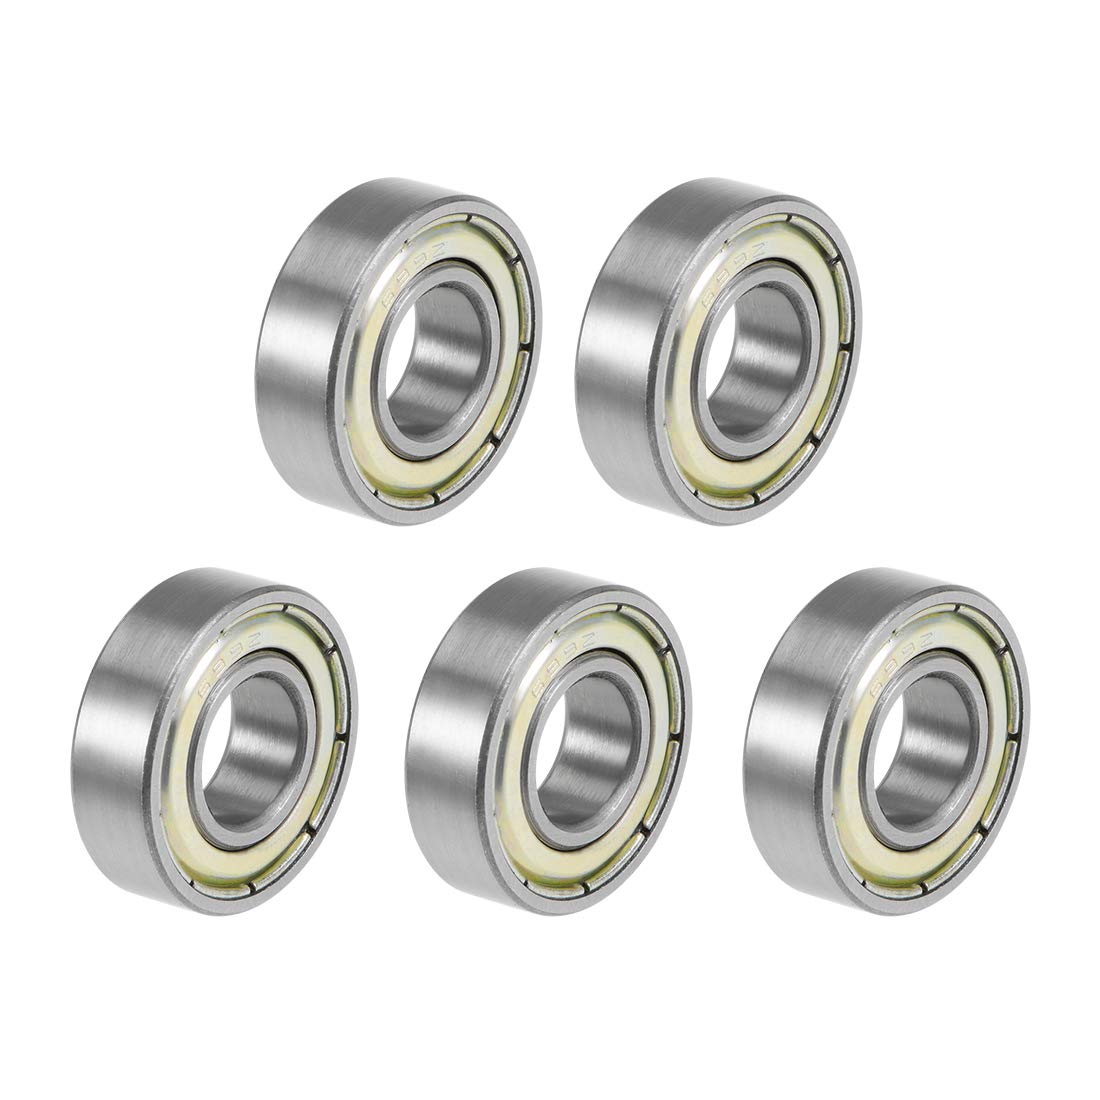 uxcell 699ZZ Deep Groove Ball Bearings X Max 48% OFF Luxury Doubl 9mm 6mm 20mm Z2